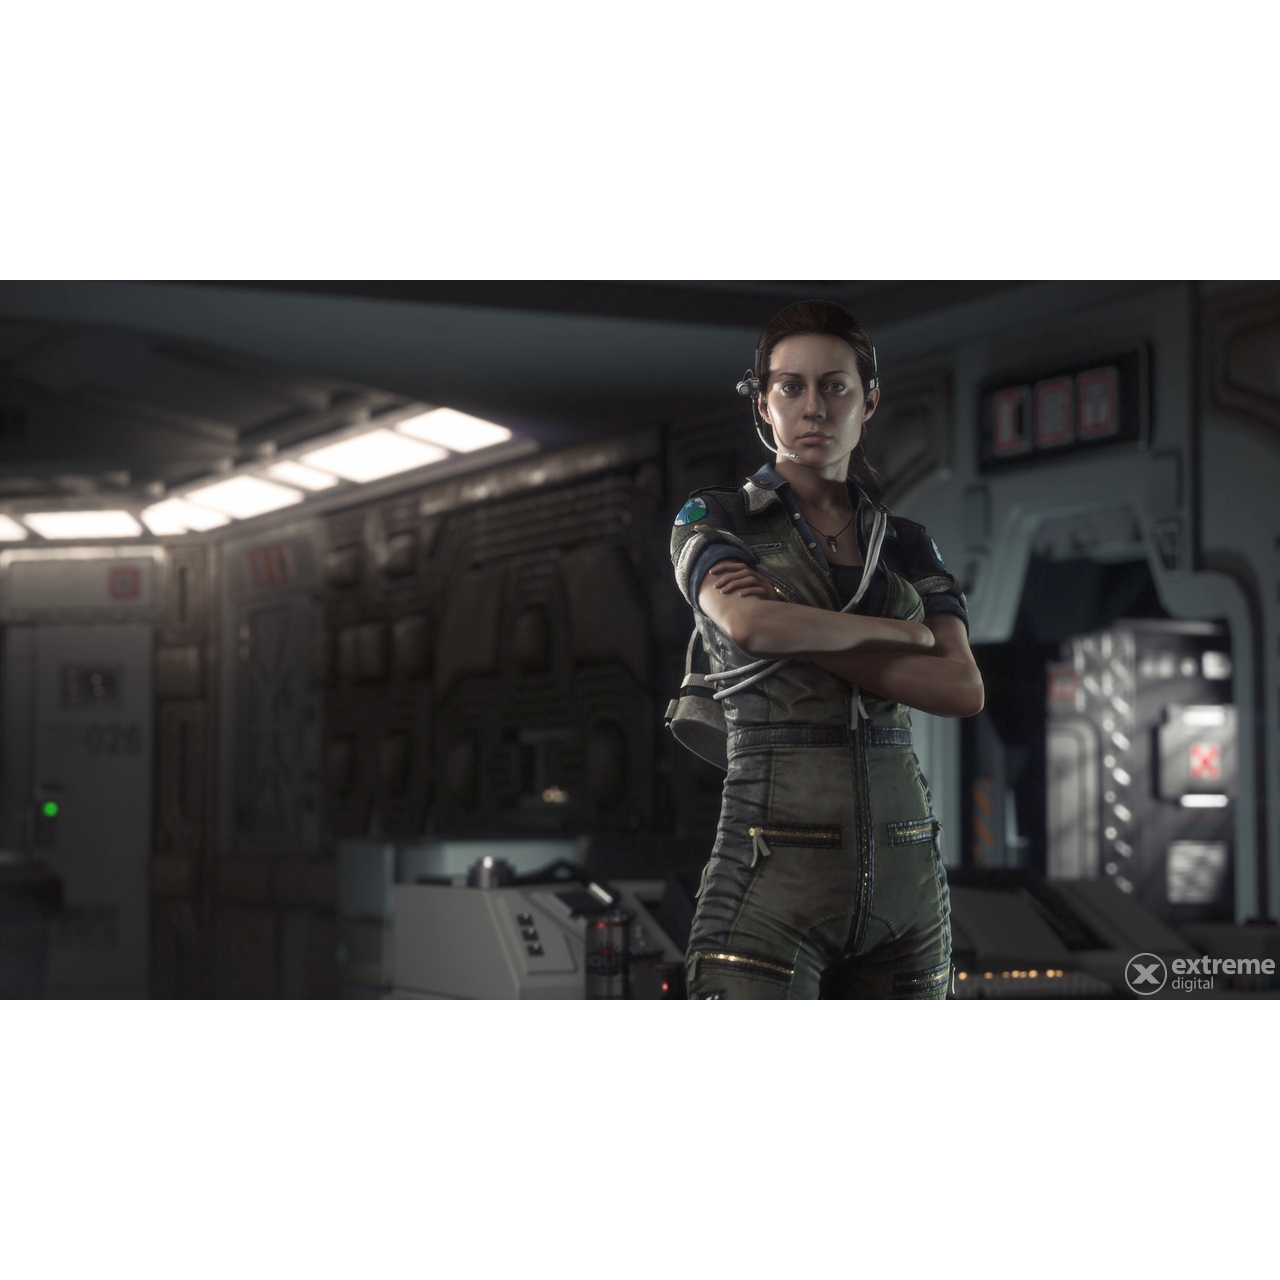 alien-isolation-nostromo-edition-pc-jatek_15b56894.jpg